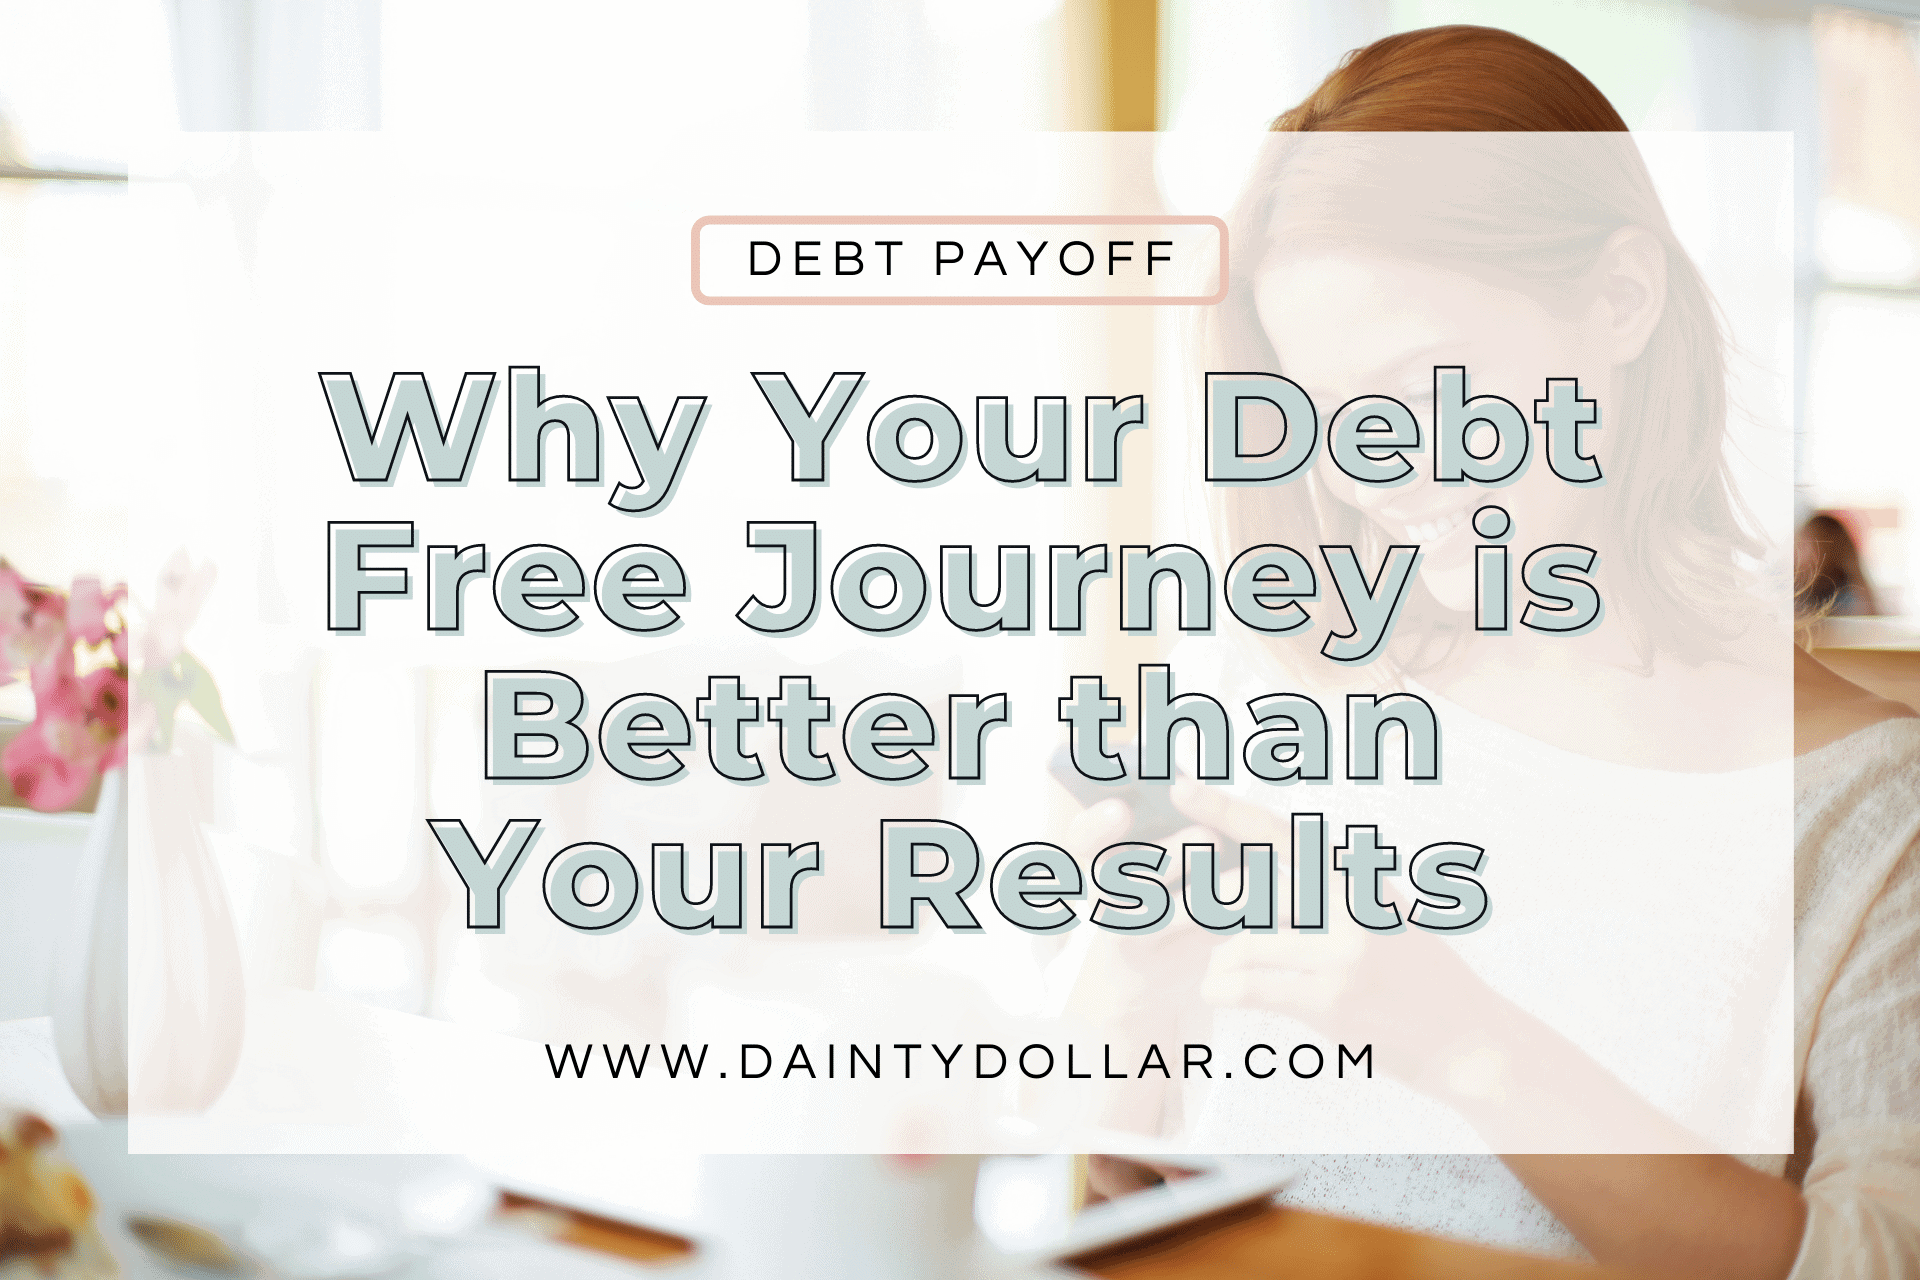 Why Your Debt Free Journey is BETTER Than Your Results - Dainty Dollar